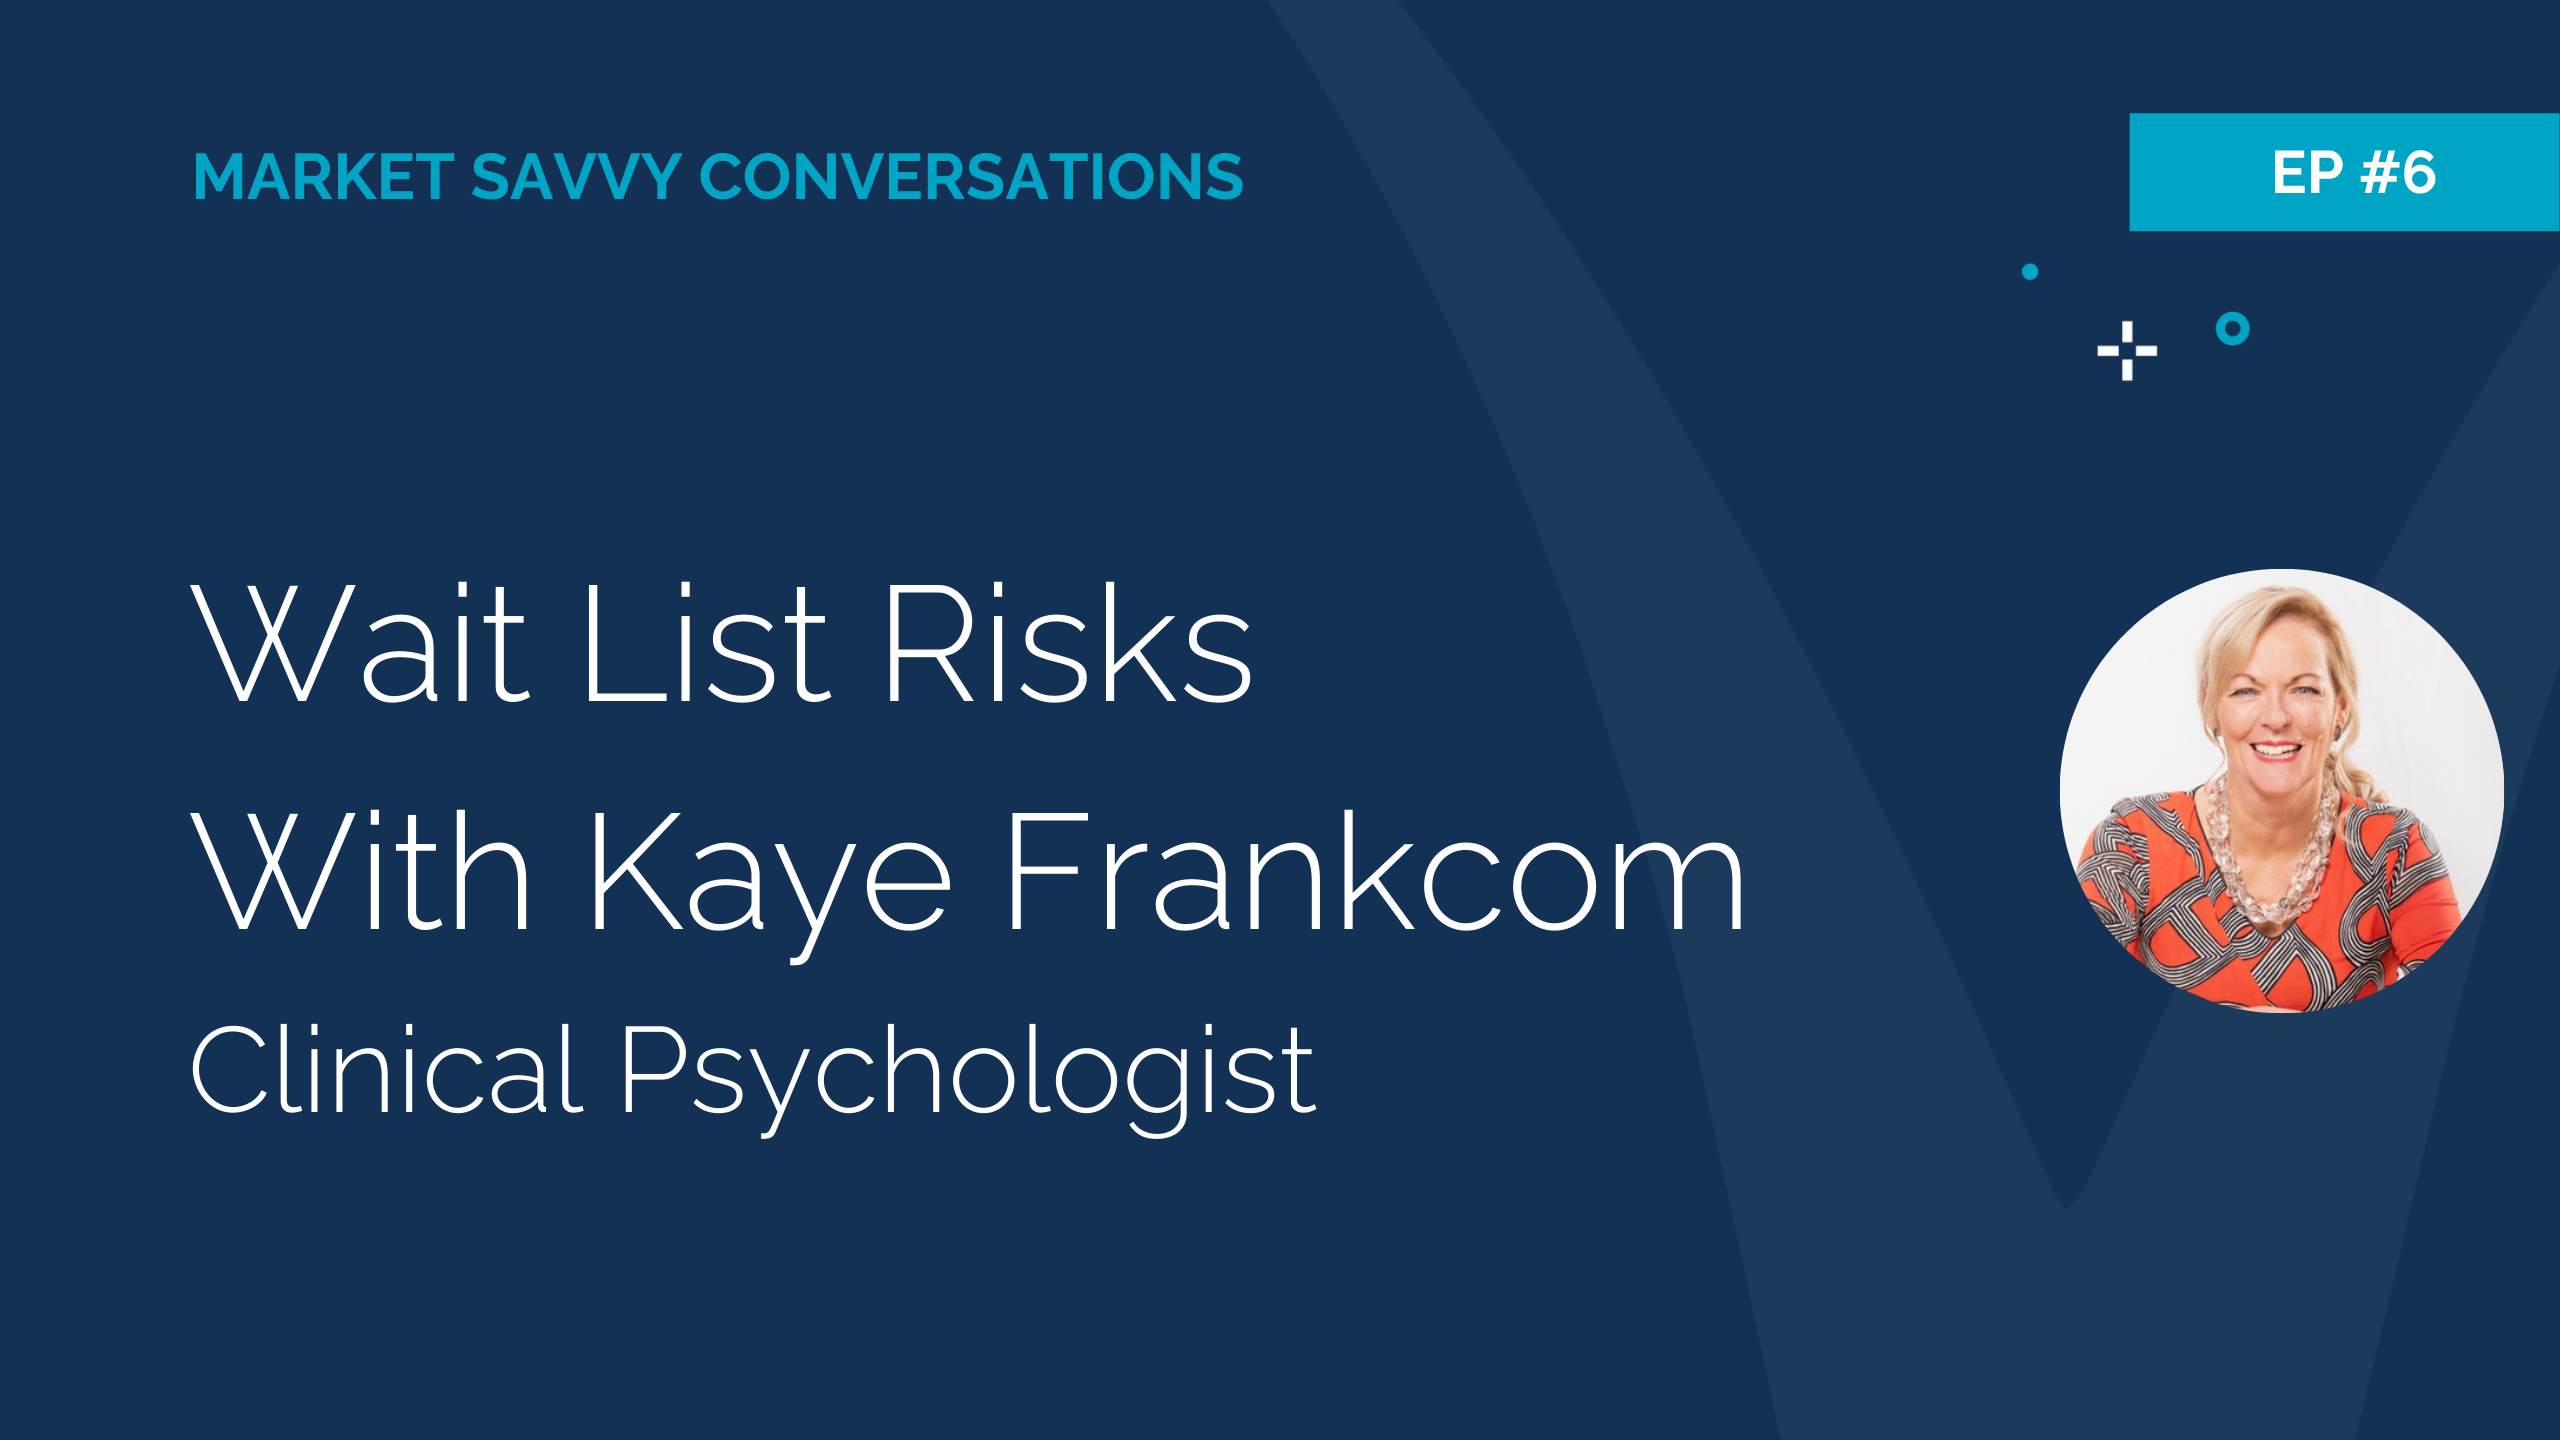 Megan Walker from Market Savvy Interviews Kaye Frankcom clinical psychologist re waiting list risks in private practice